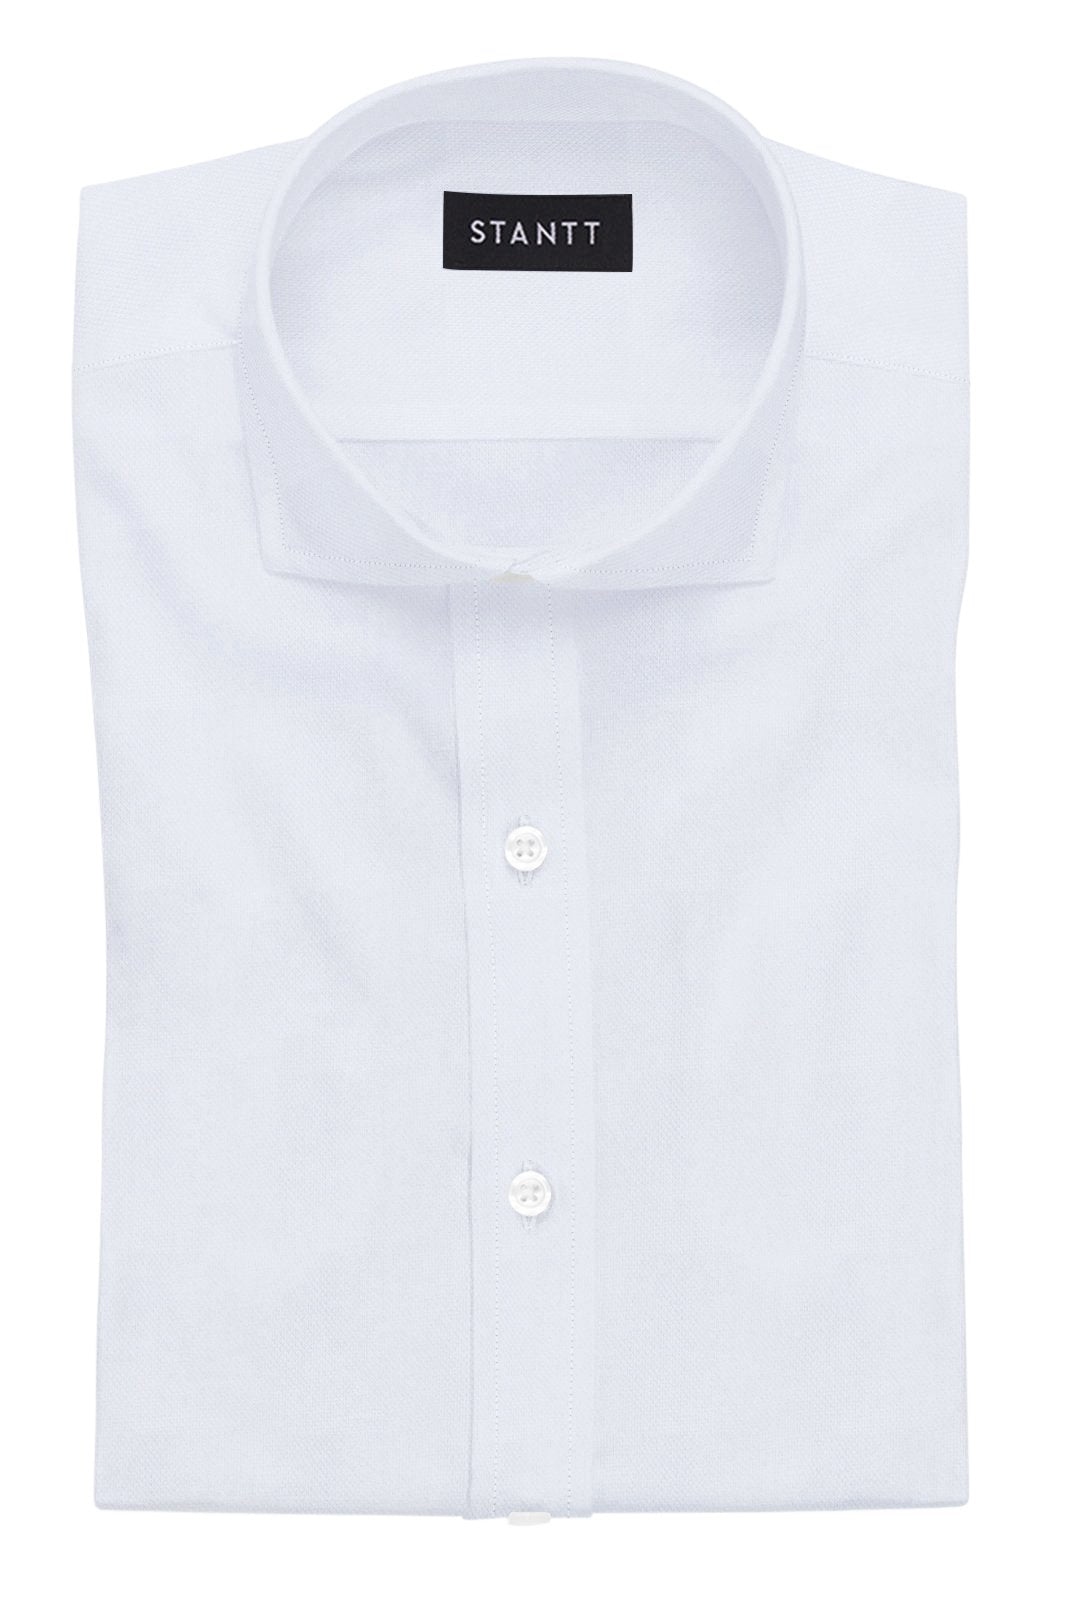 White Royal Oxford: Cutaway Collar, Barrel Cuff